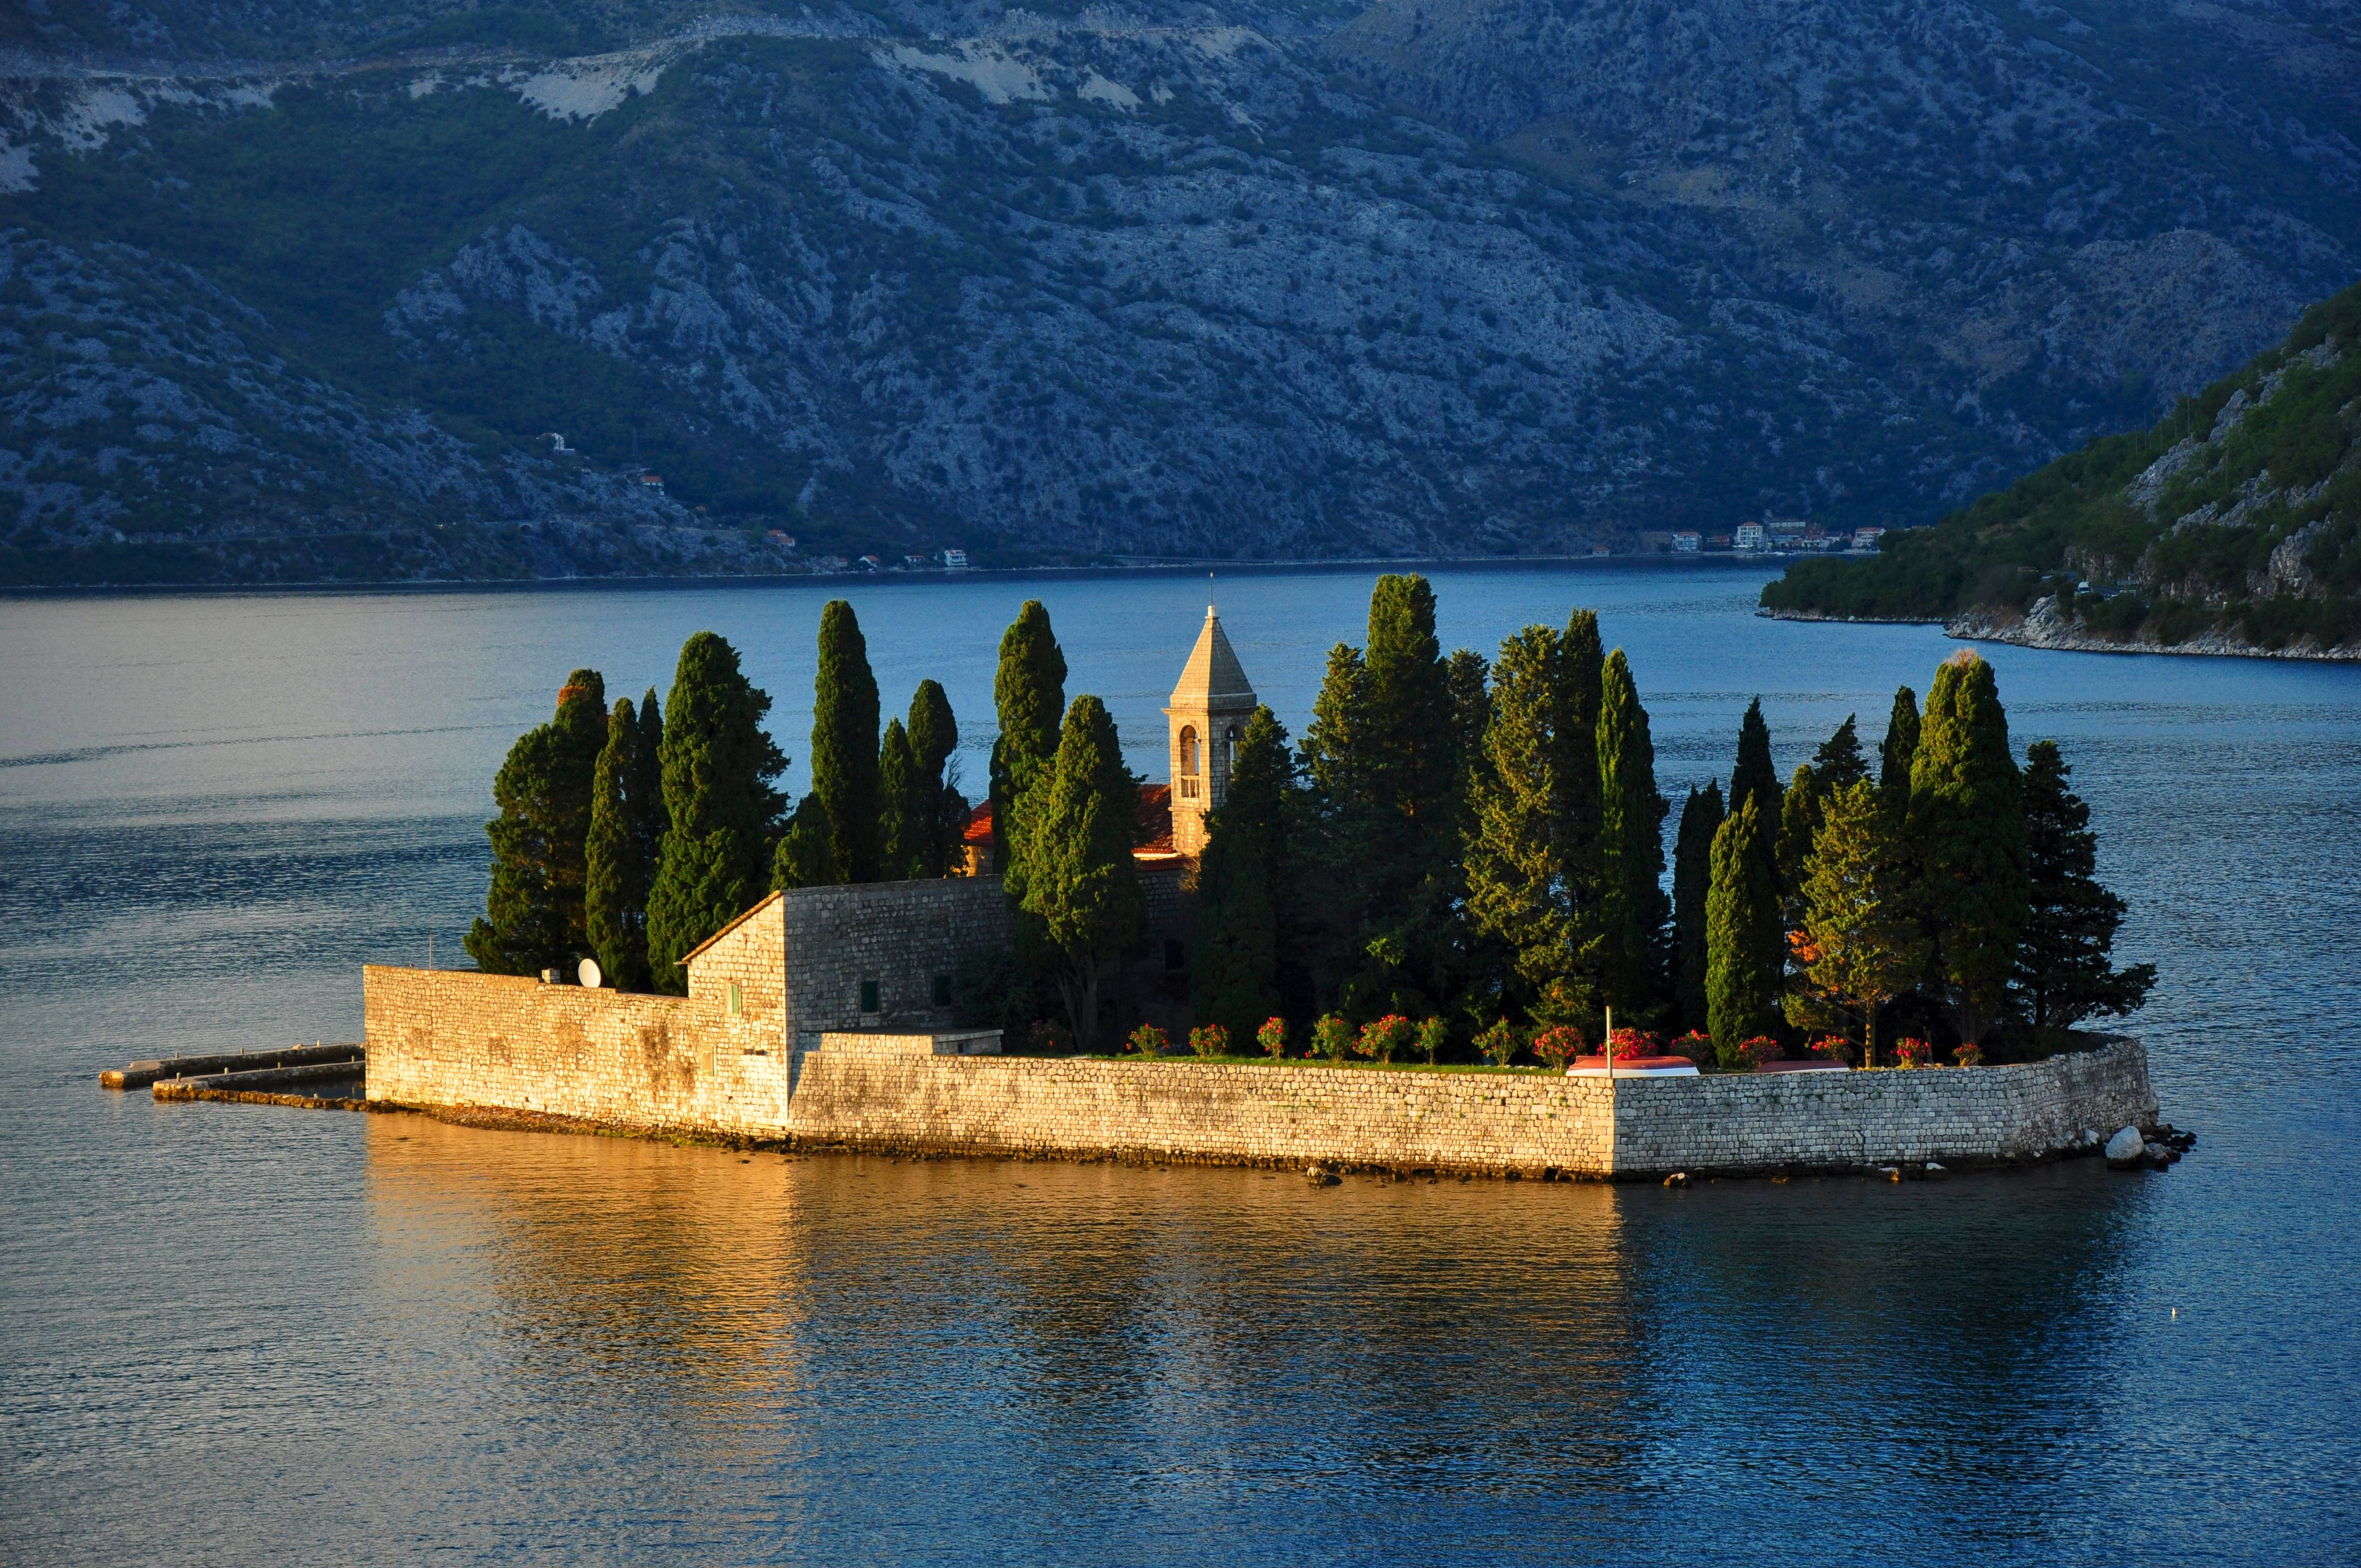 Tiny islands seem to pop up from Montenegro's Bay of Kotor.